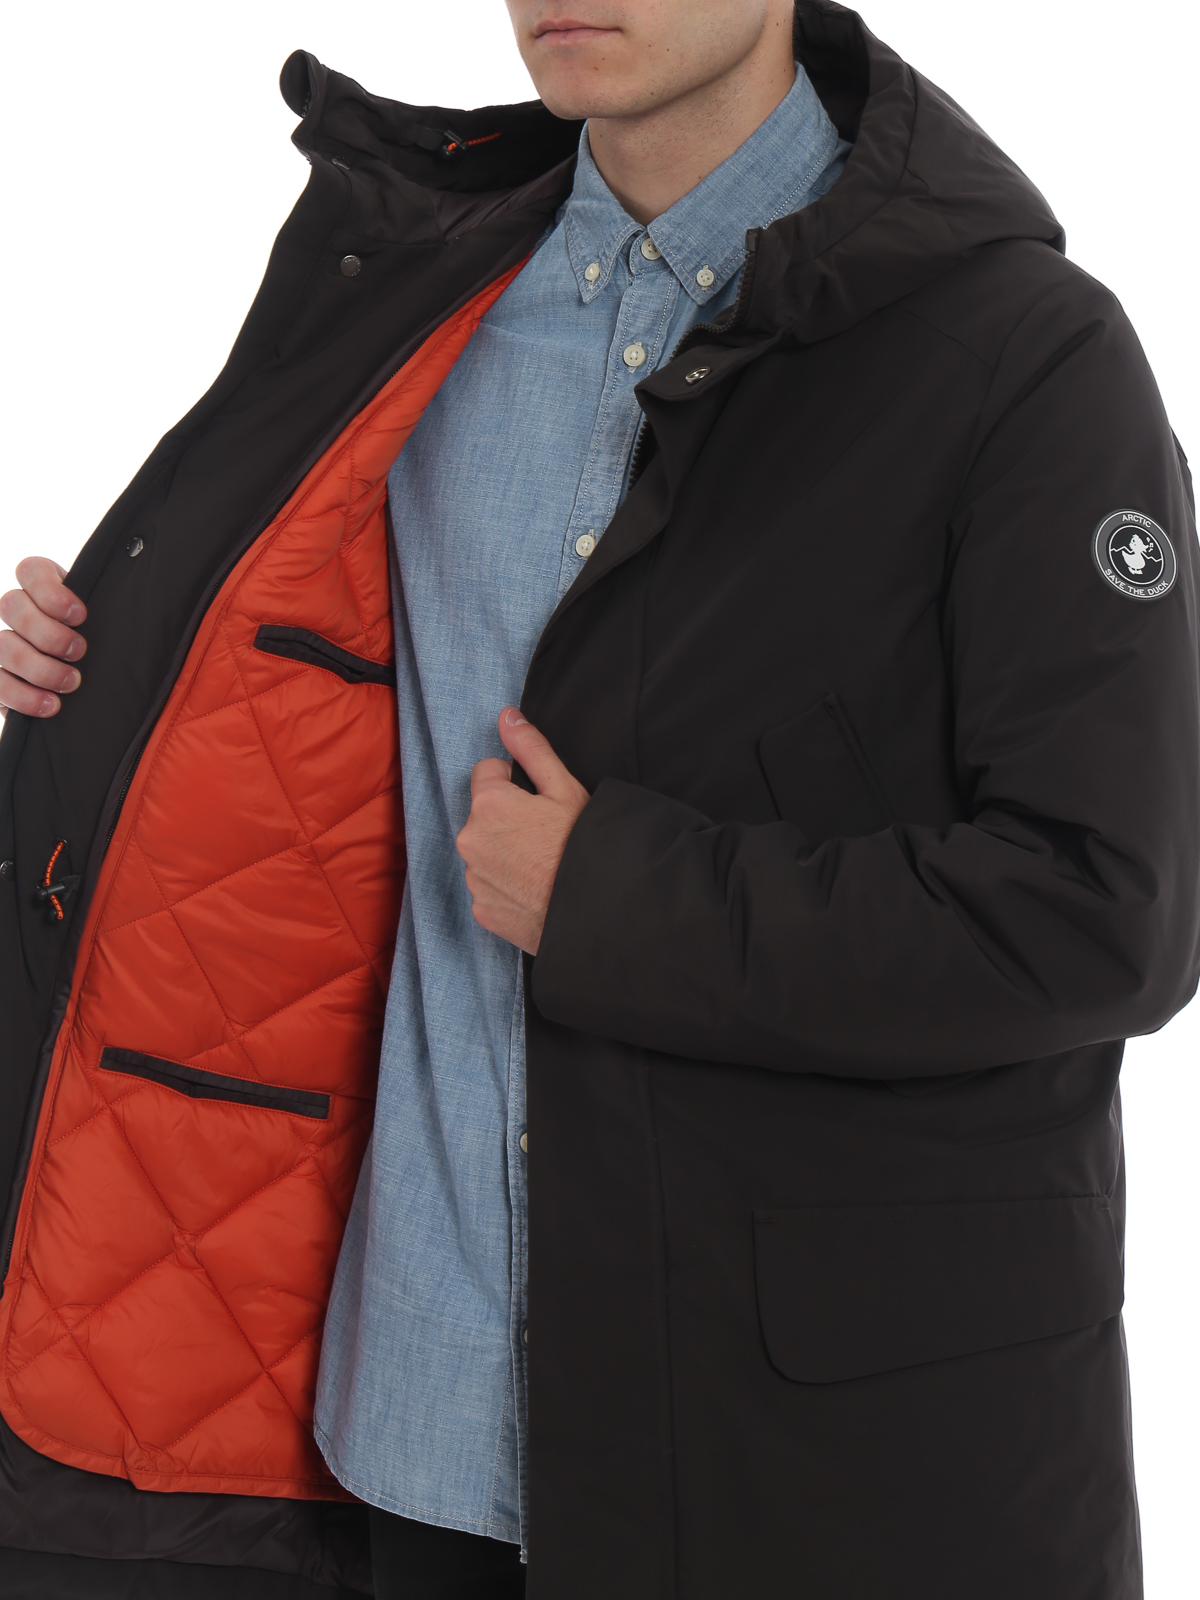 new style bca55 1979d Save the Duck - Copy padded jacket - padded jackets ...